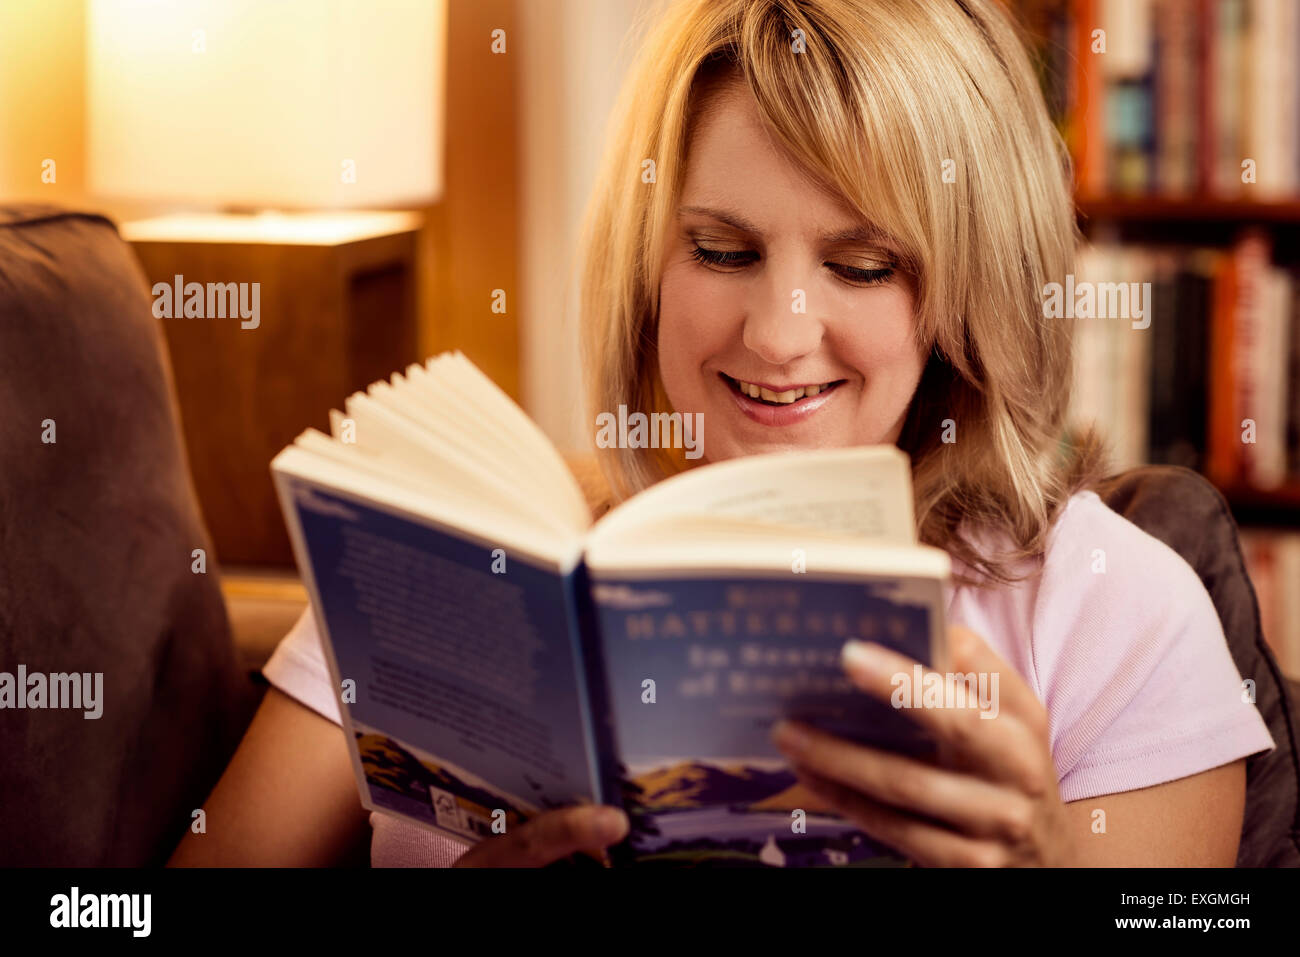 Woman reading book on sofa at home - Stock Image